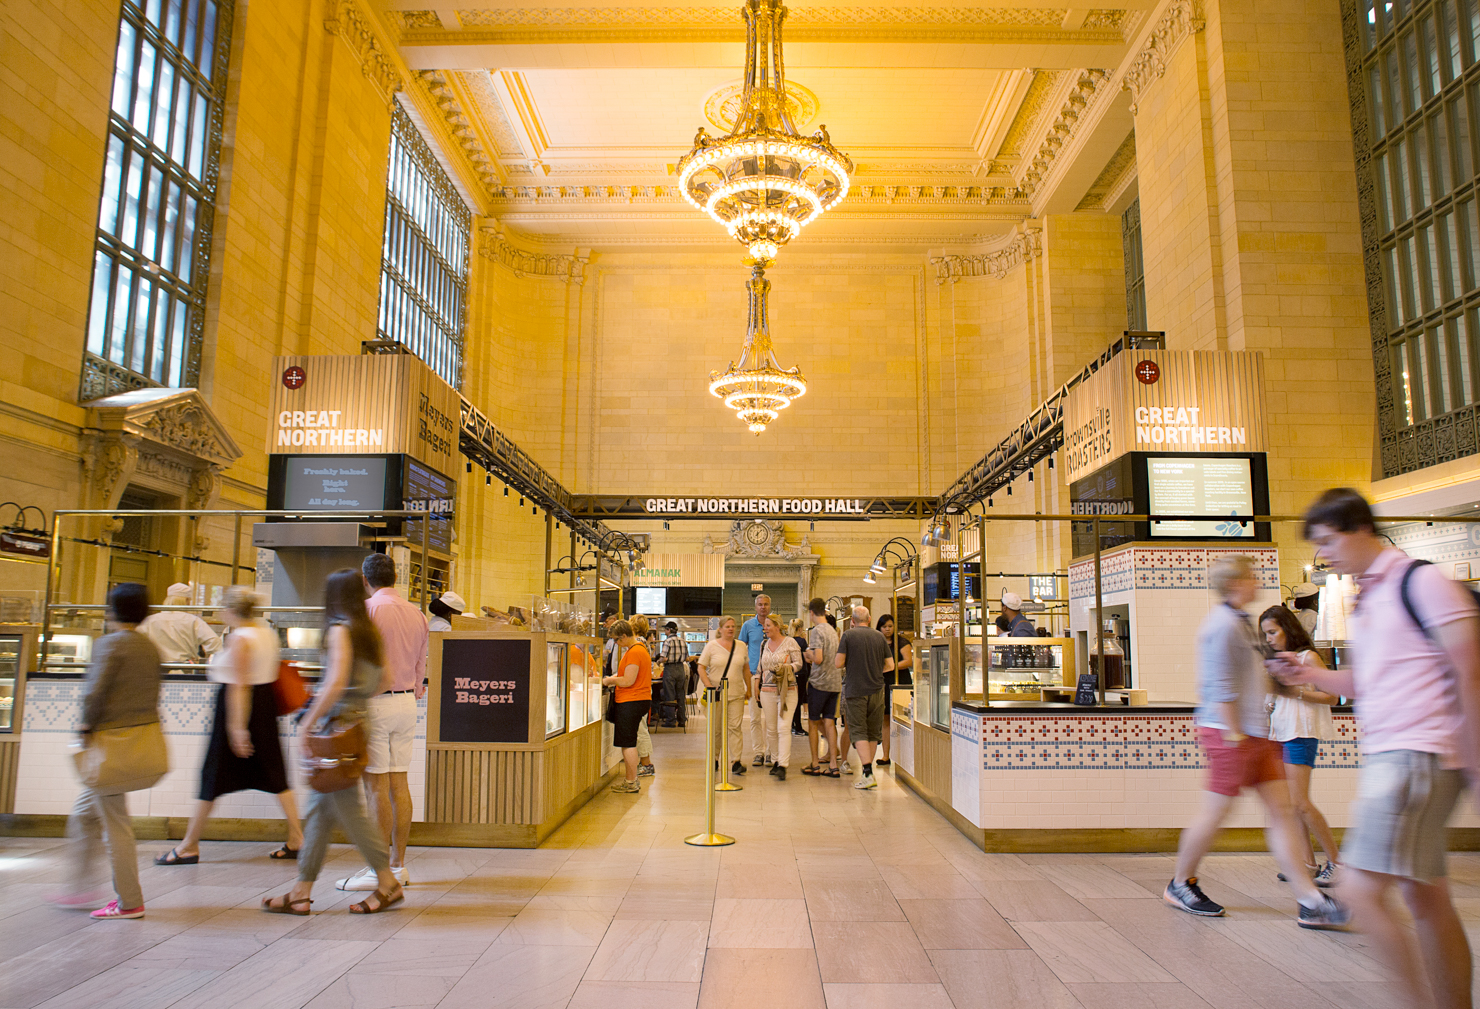 great northern food hall brownsville coffee the pulley collective brooklyn grand central terminal new york claus meyer sprudge